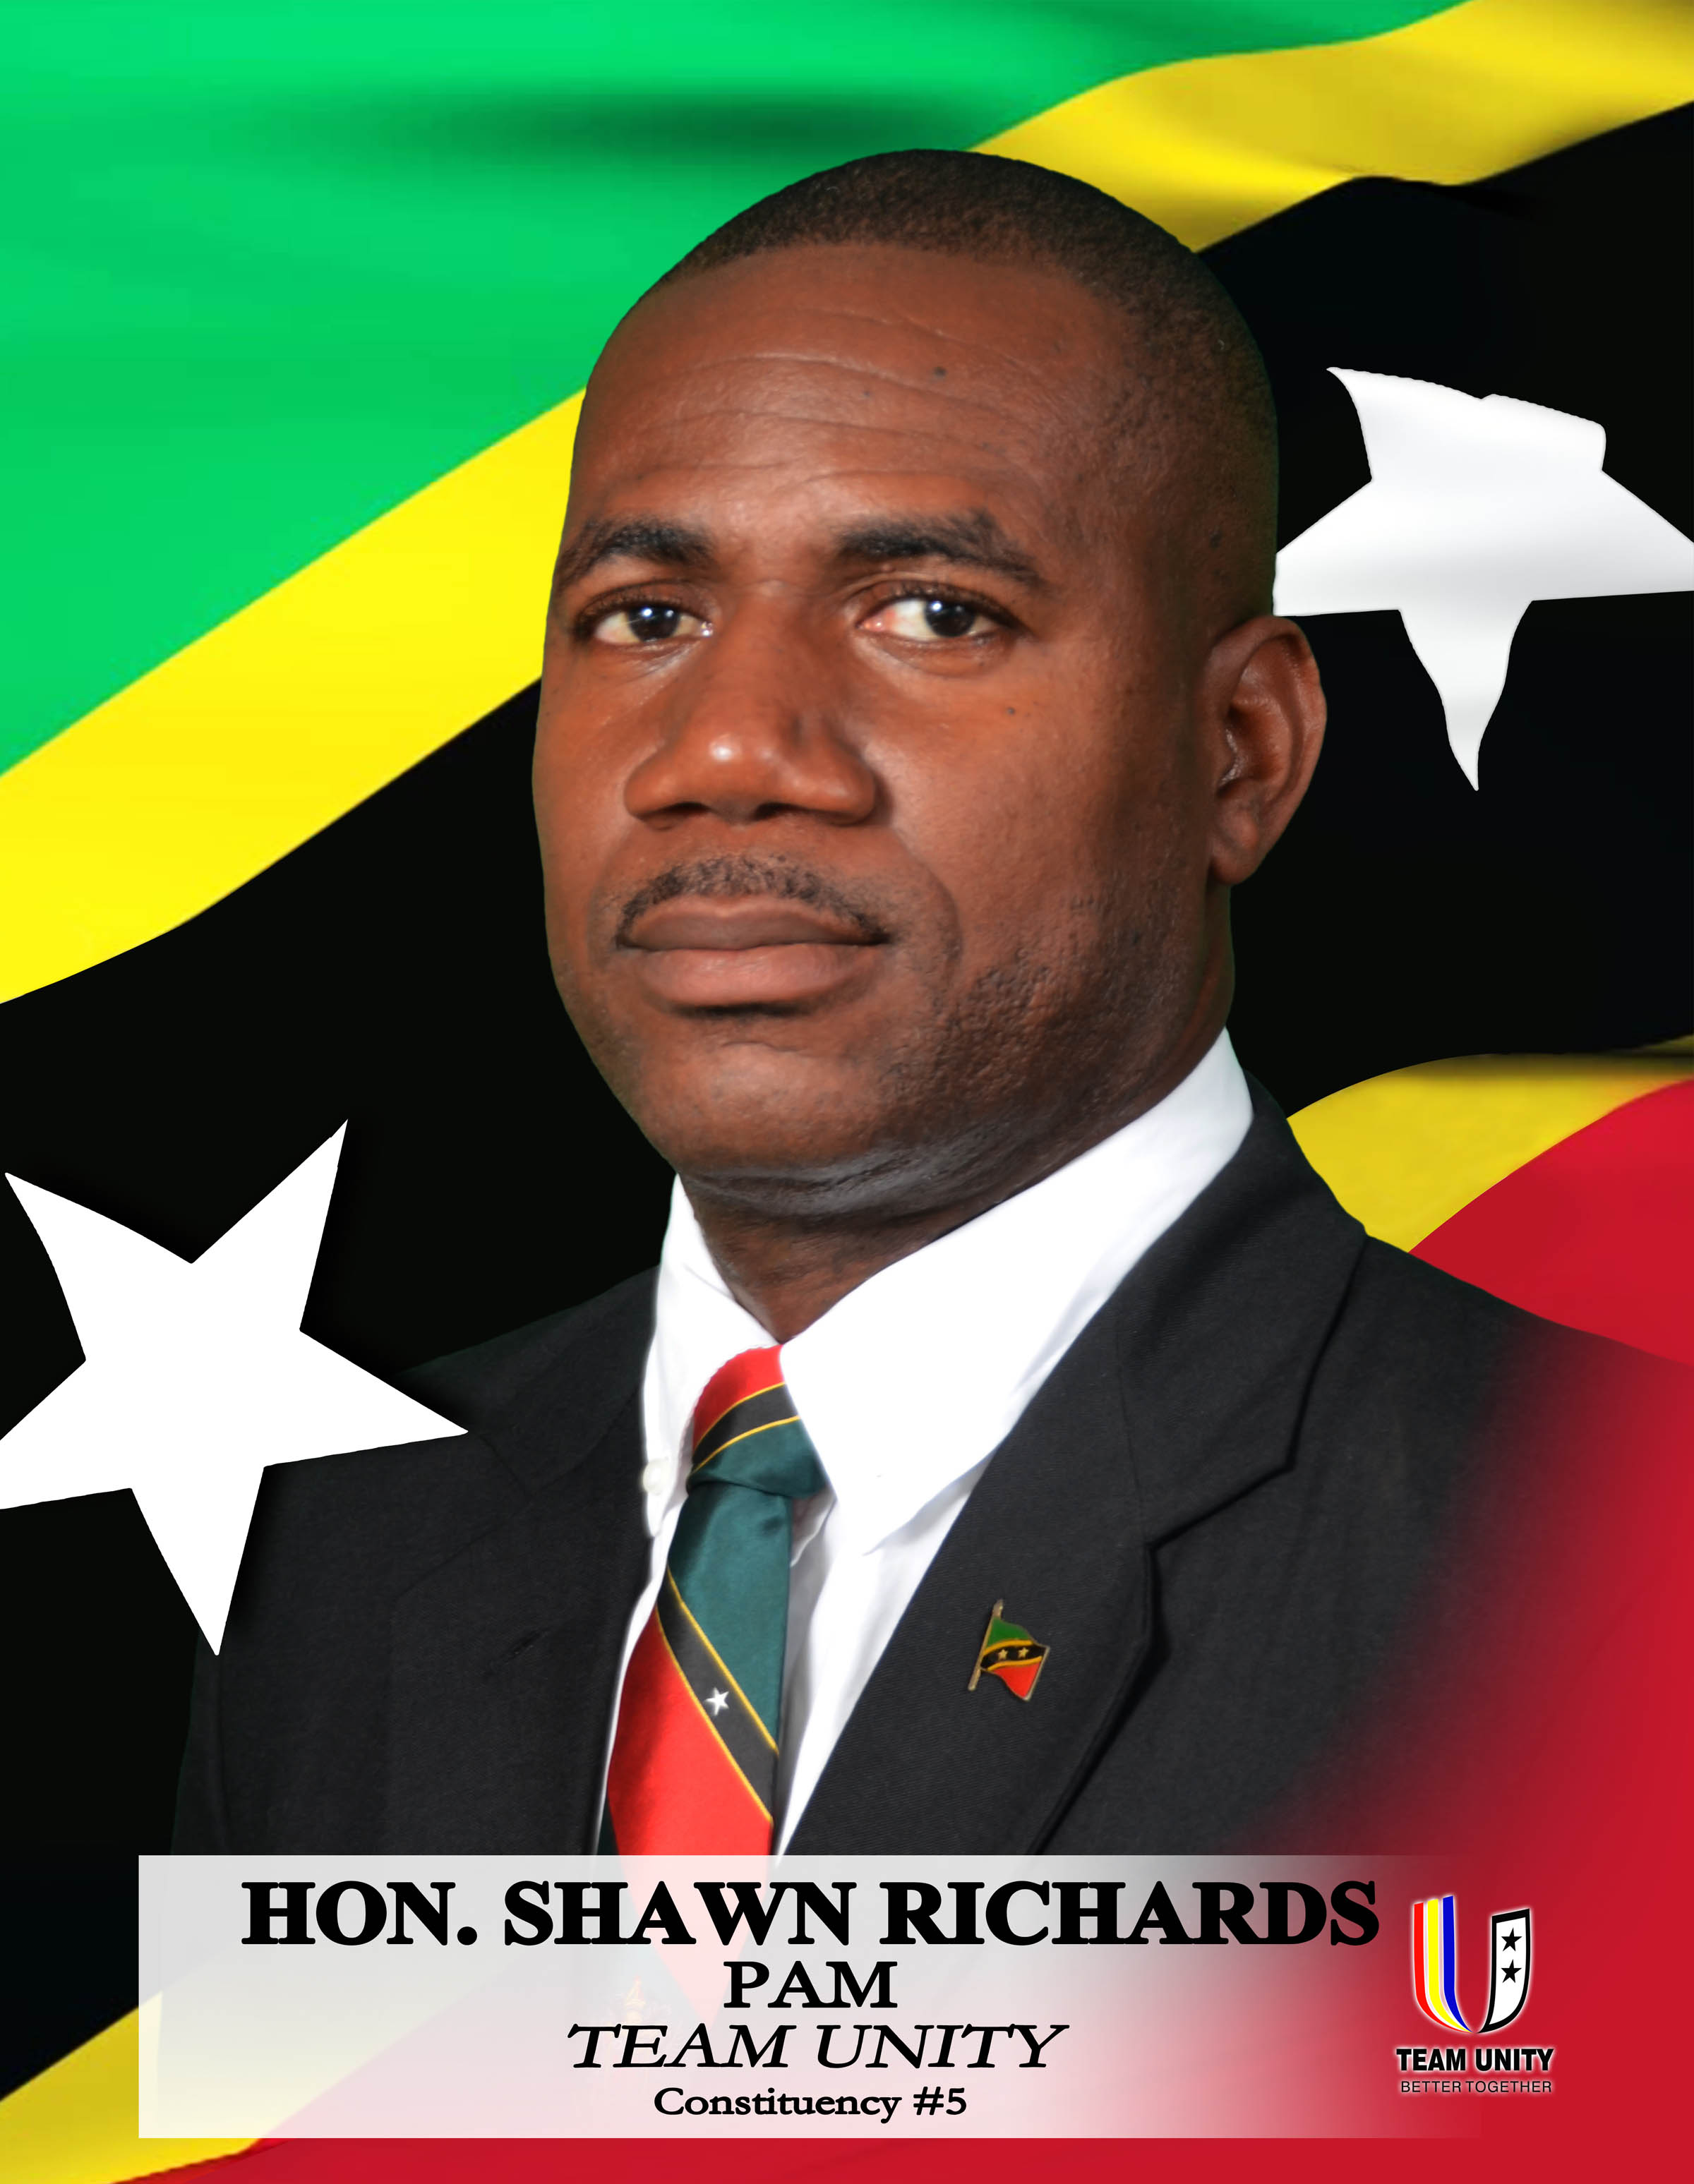 Hon. Shawn Richards